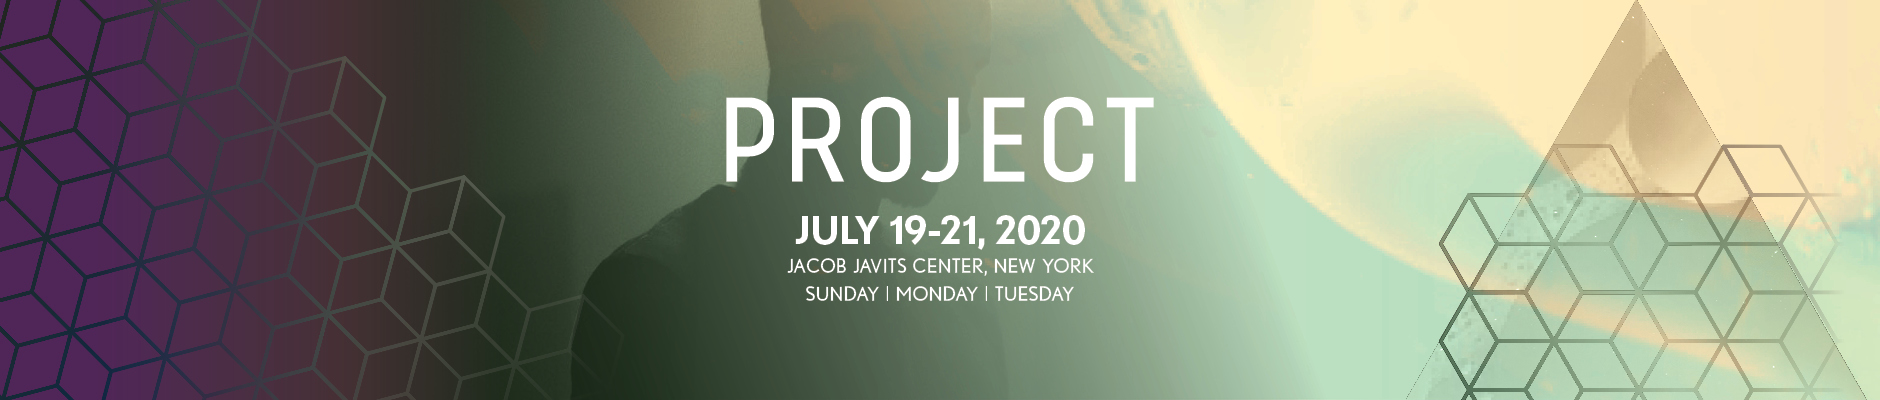 PROJECT New York Sponsors.  July 19-21, 2020. Jacob Javits Center, New York.